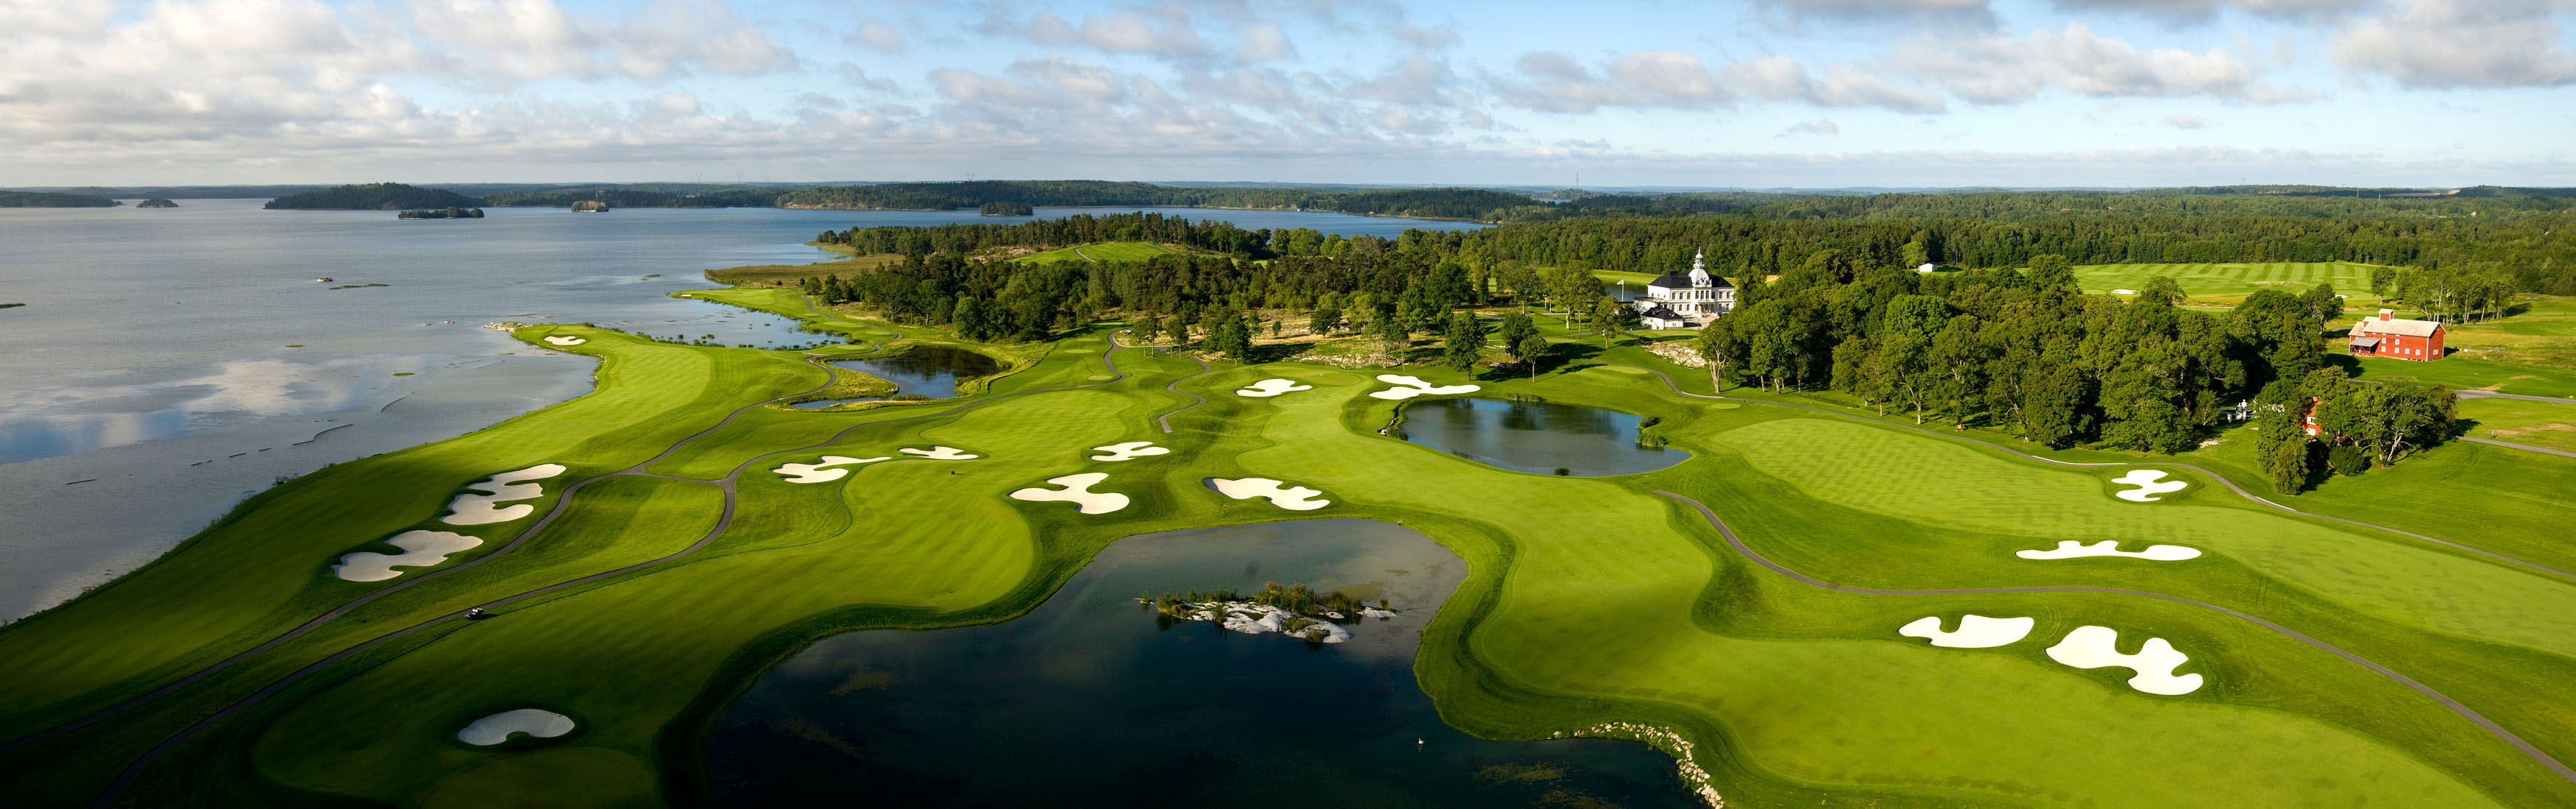 Bro Hof Slott panoramic view of Stadium Course and Club House (picture: Lennart Hyse)